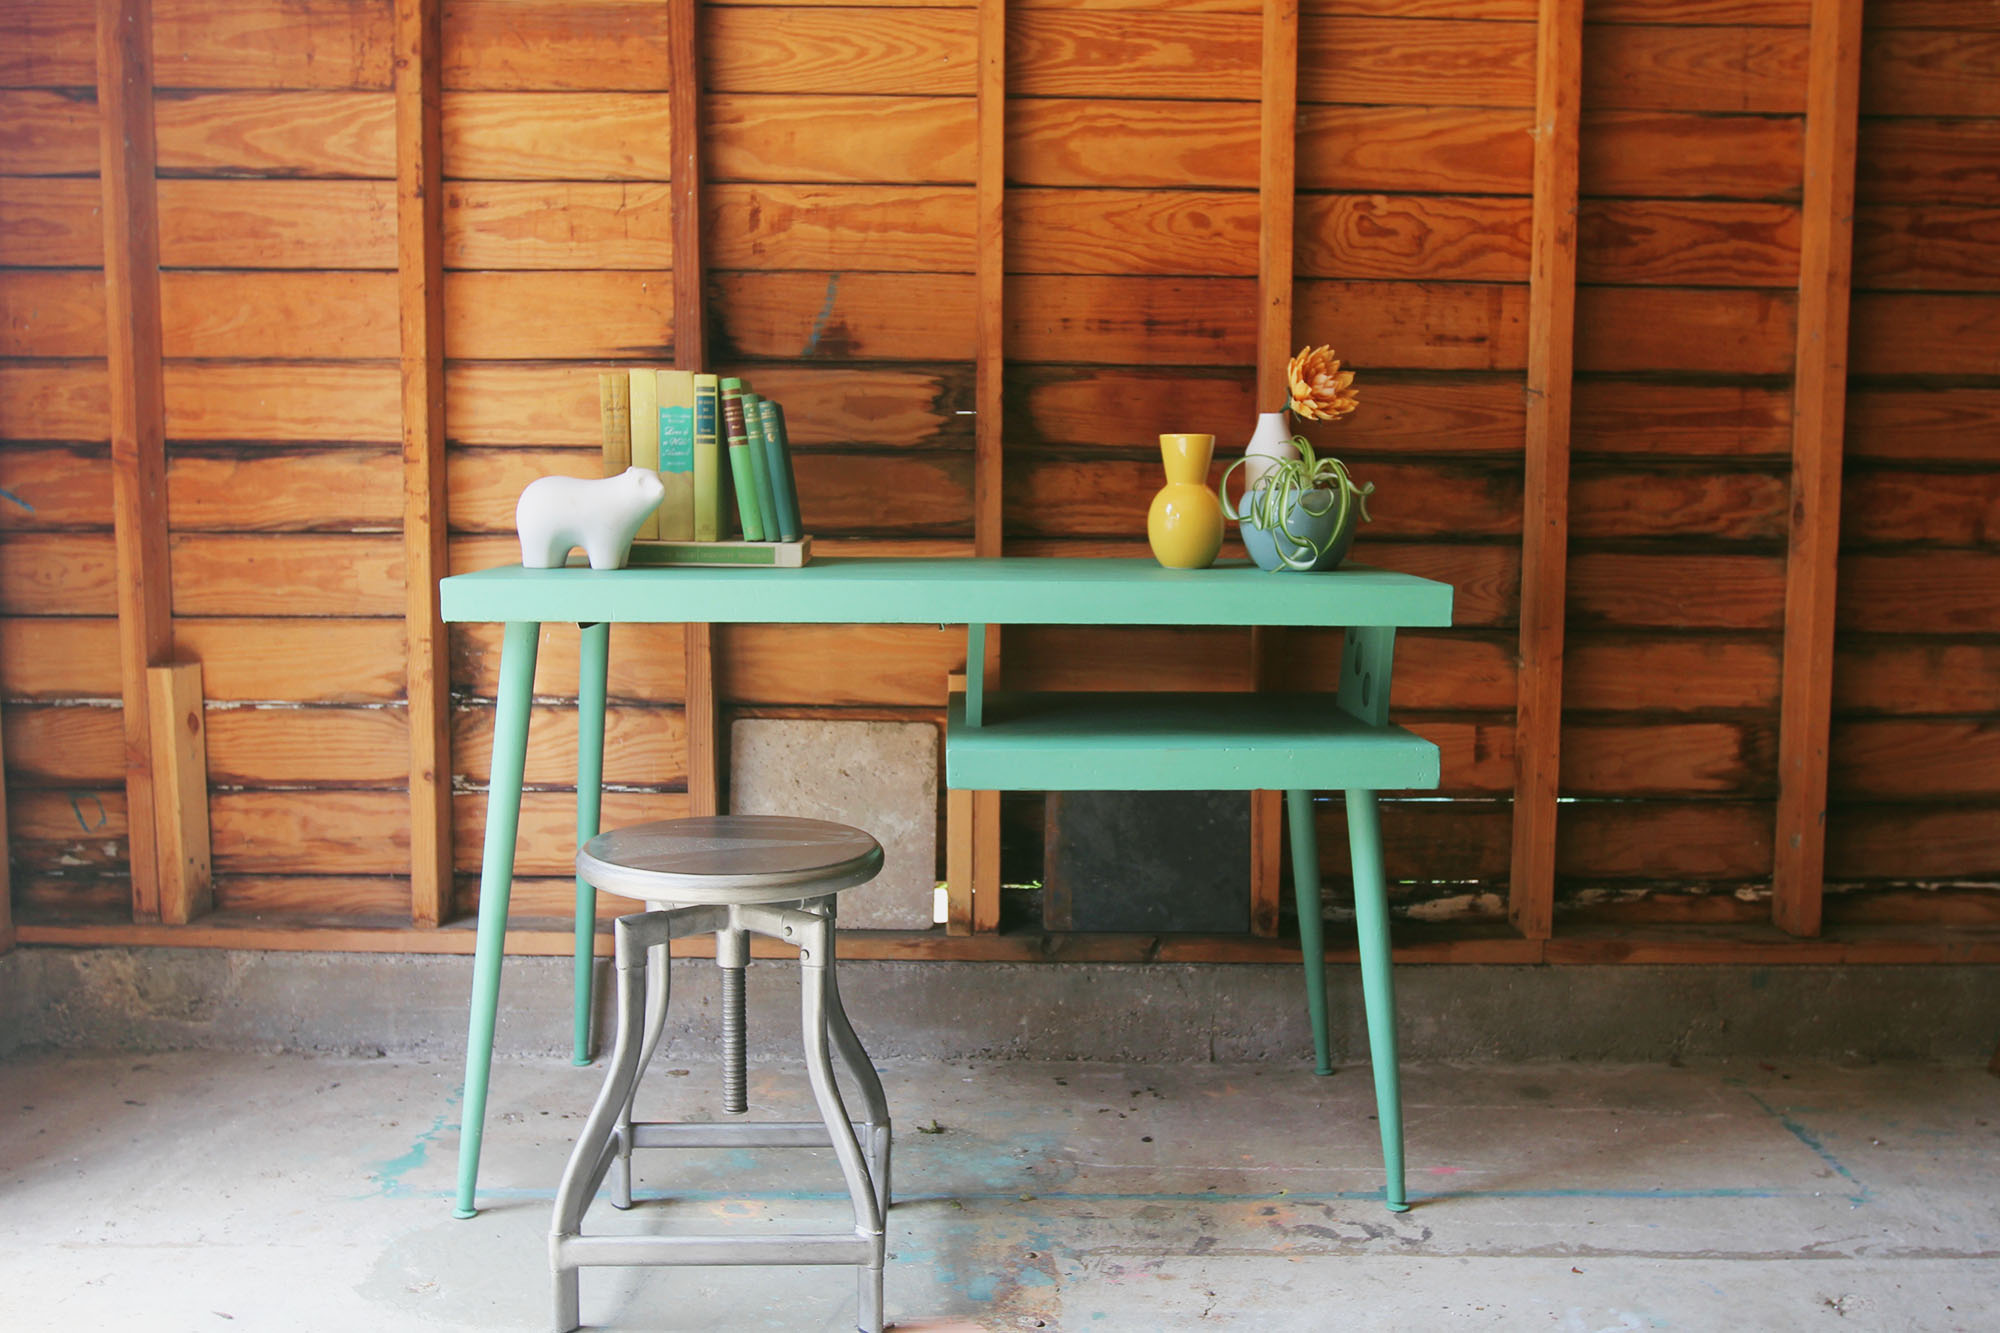 a-simpler-design-dallas-furniture-green-mid-century-desk-jpg1.jpg